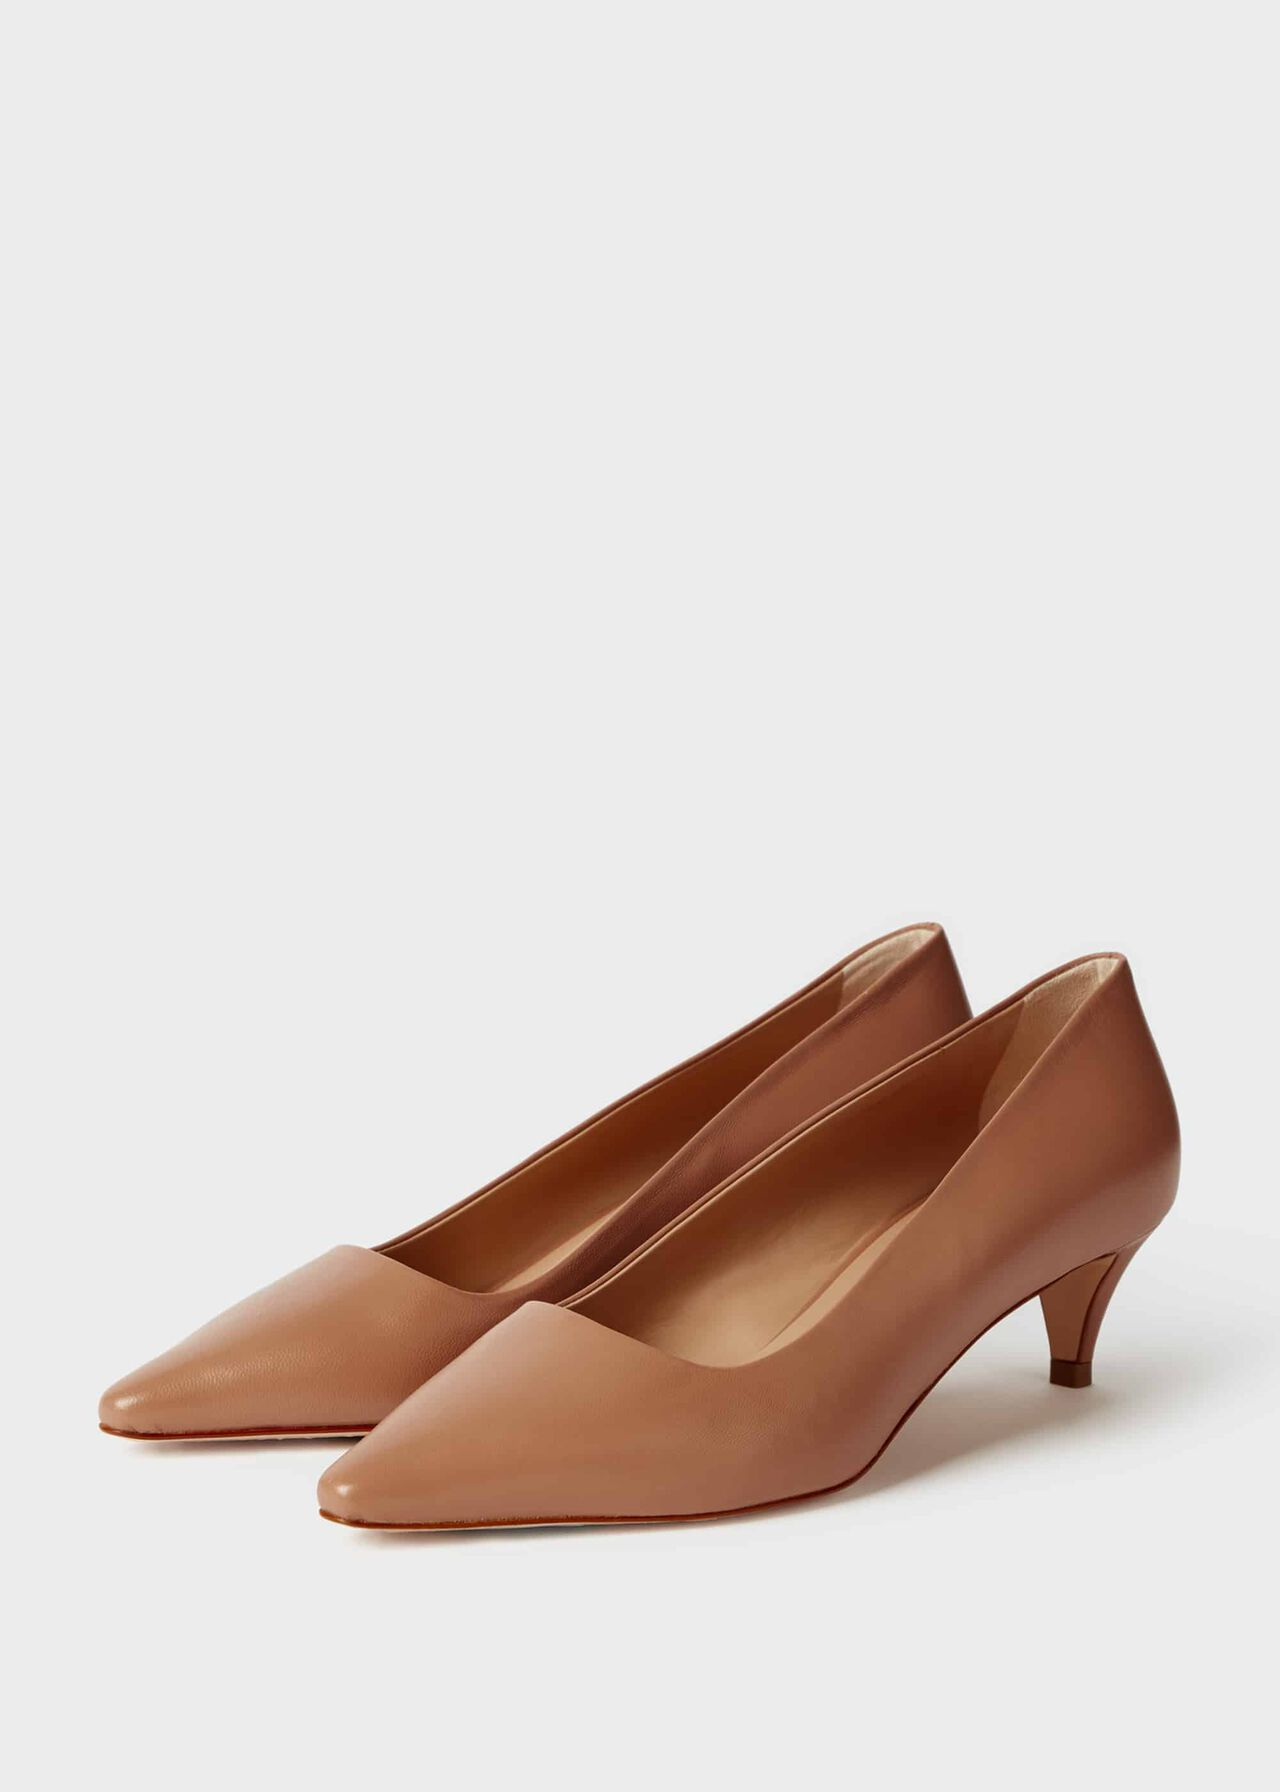 Millie Leather Kitten Heel Court Shoes Toasted Almond